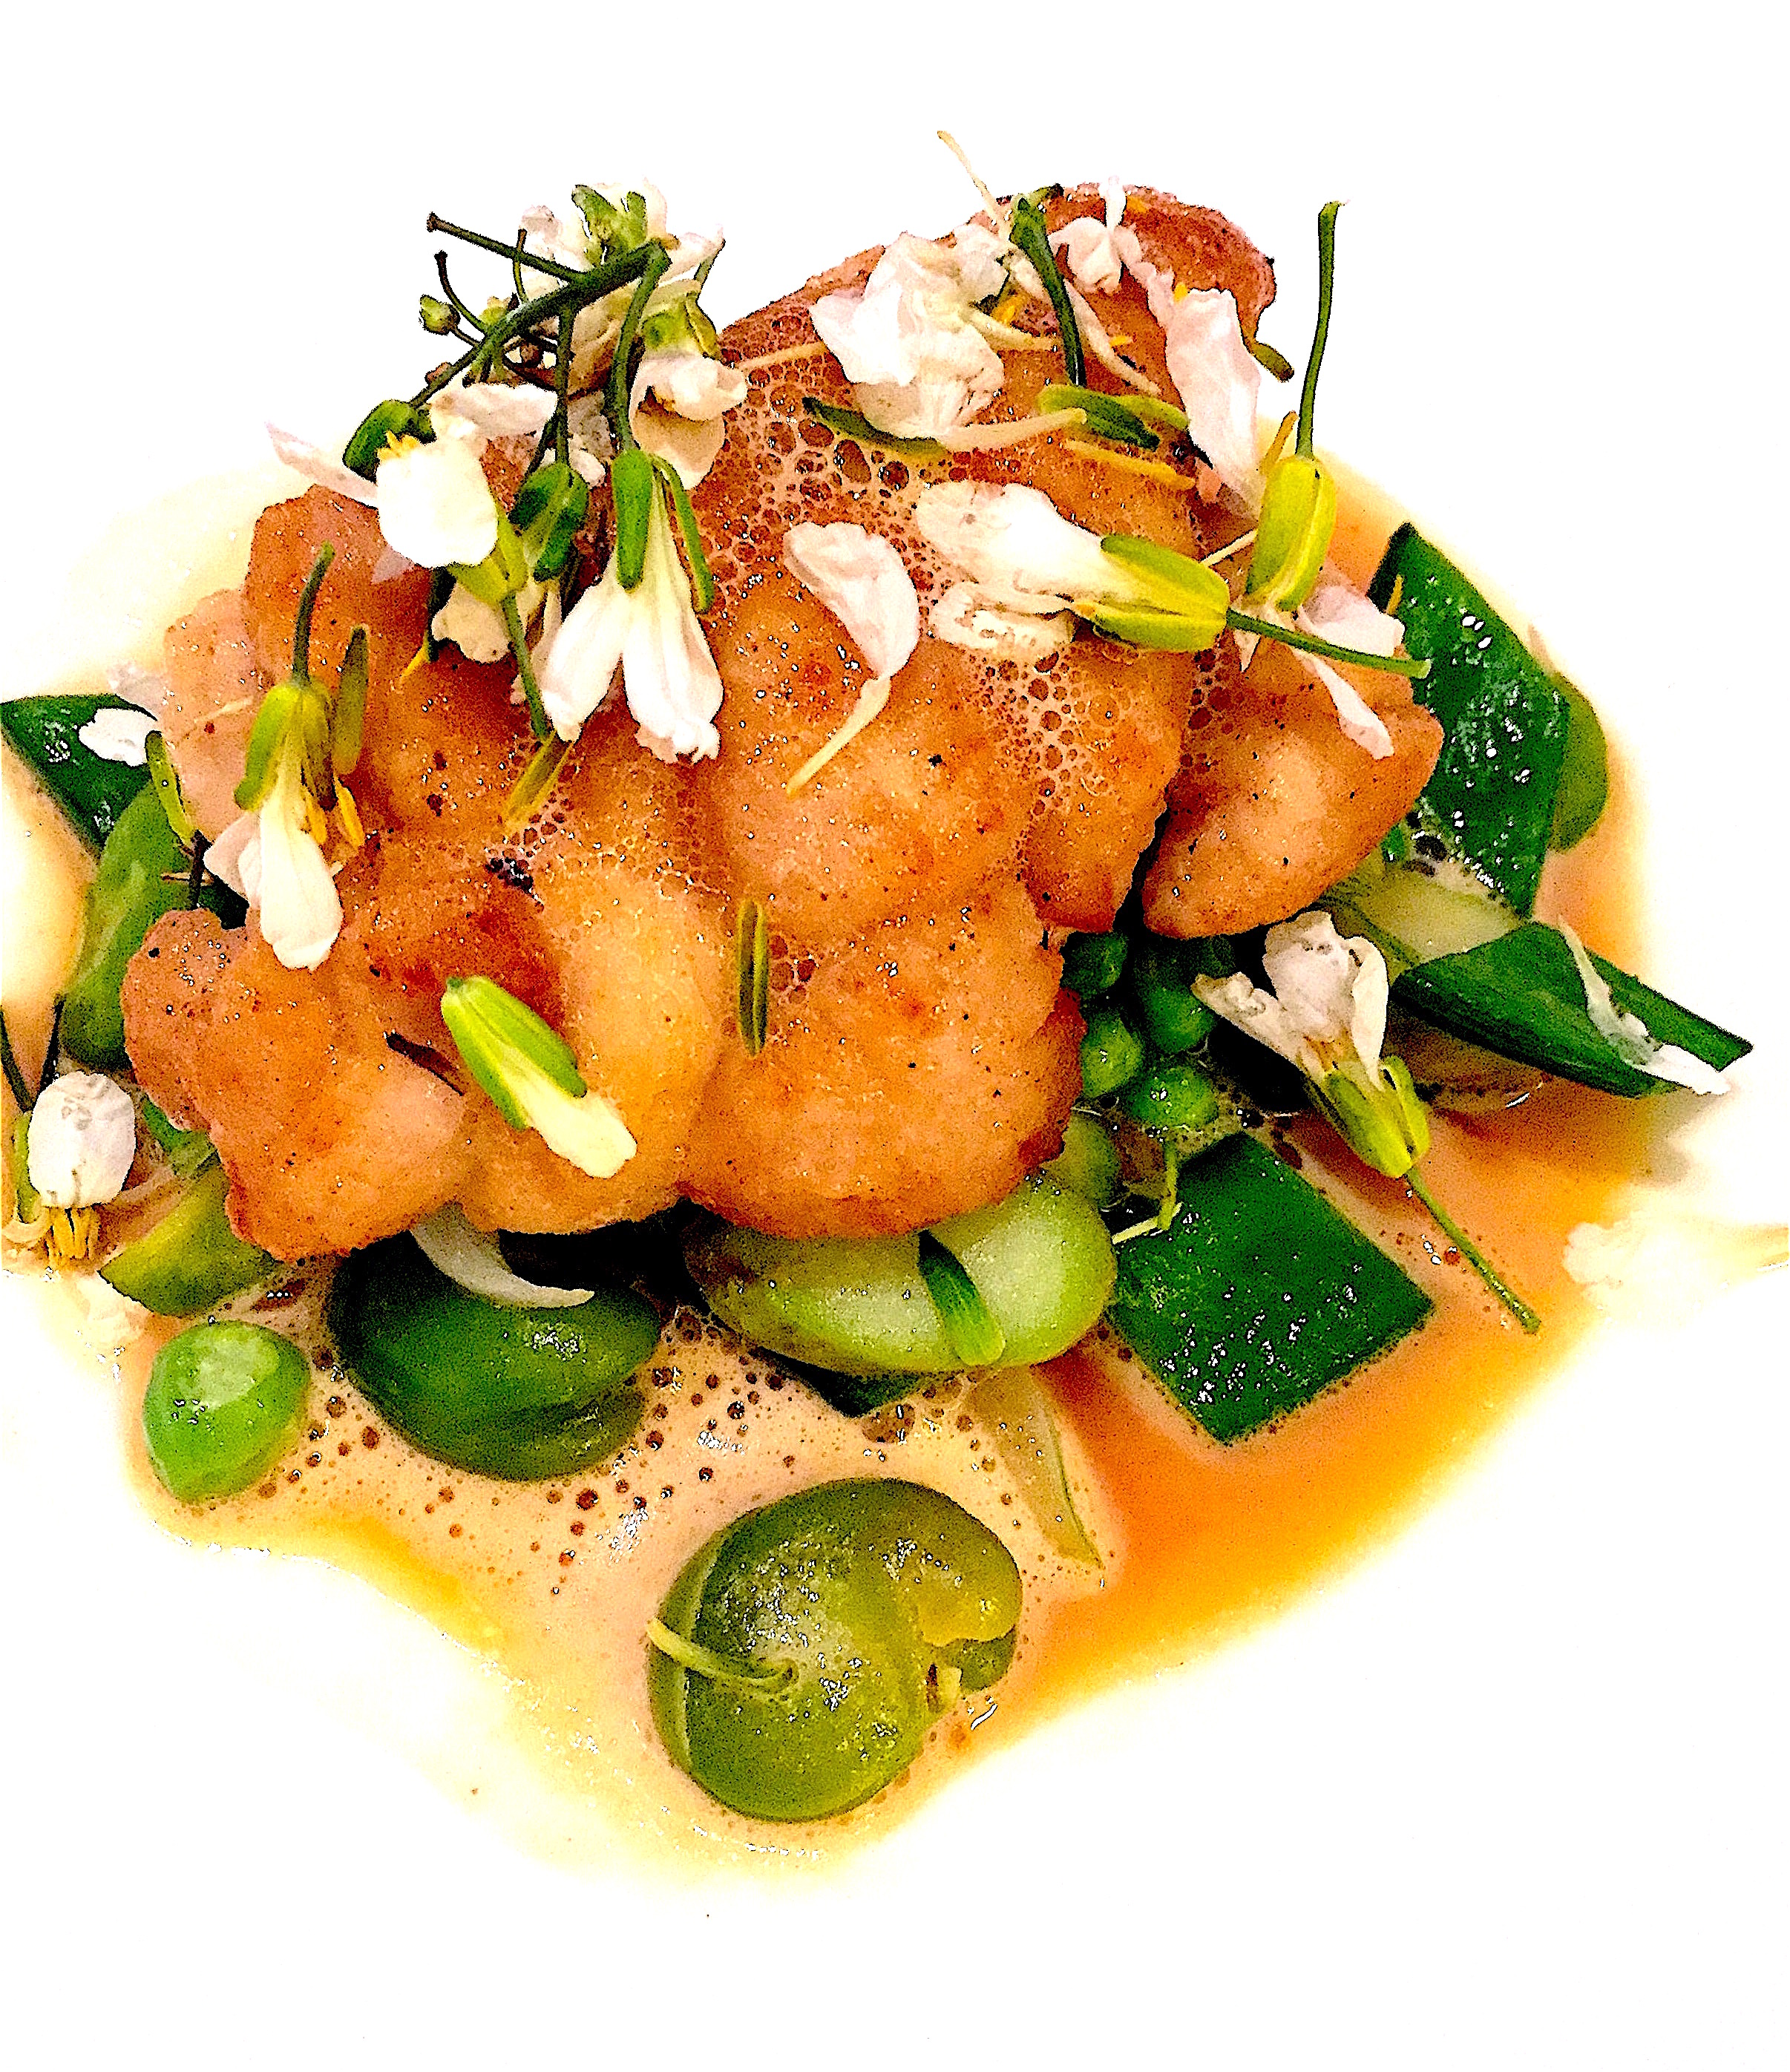 Restaurant Passerini - veal sweetbreads with spring vegetables